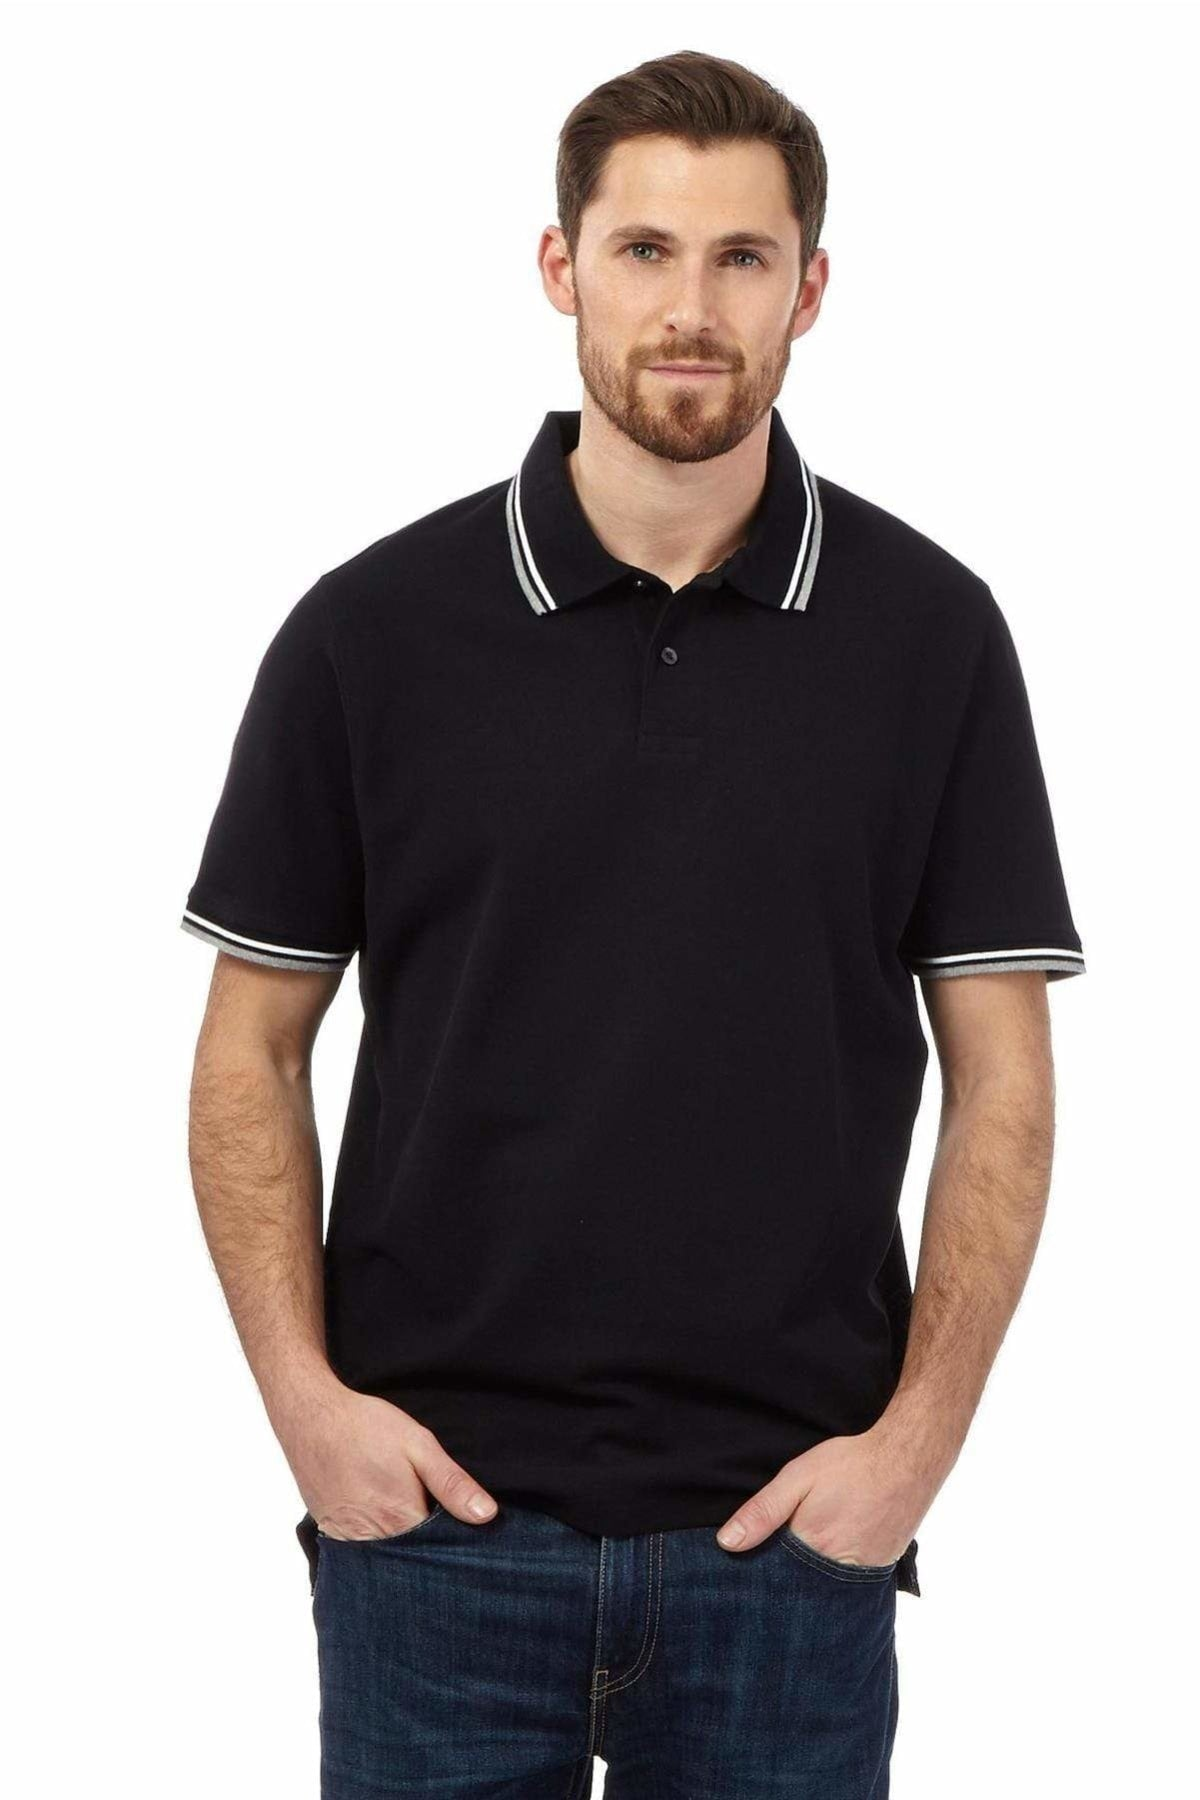 MAINE New England MAINE New England Mens Polo Shirt Tipped Collar | S / Black Secret Label